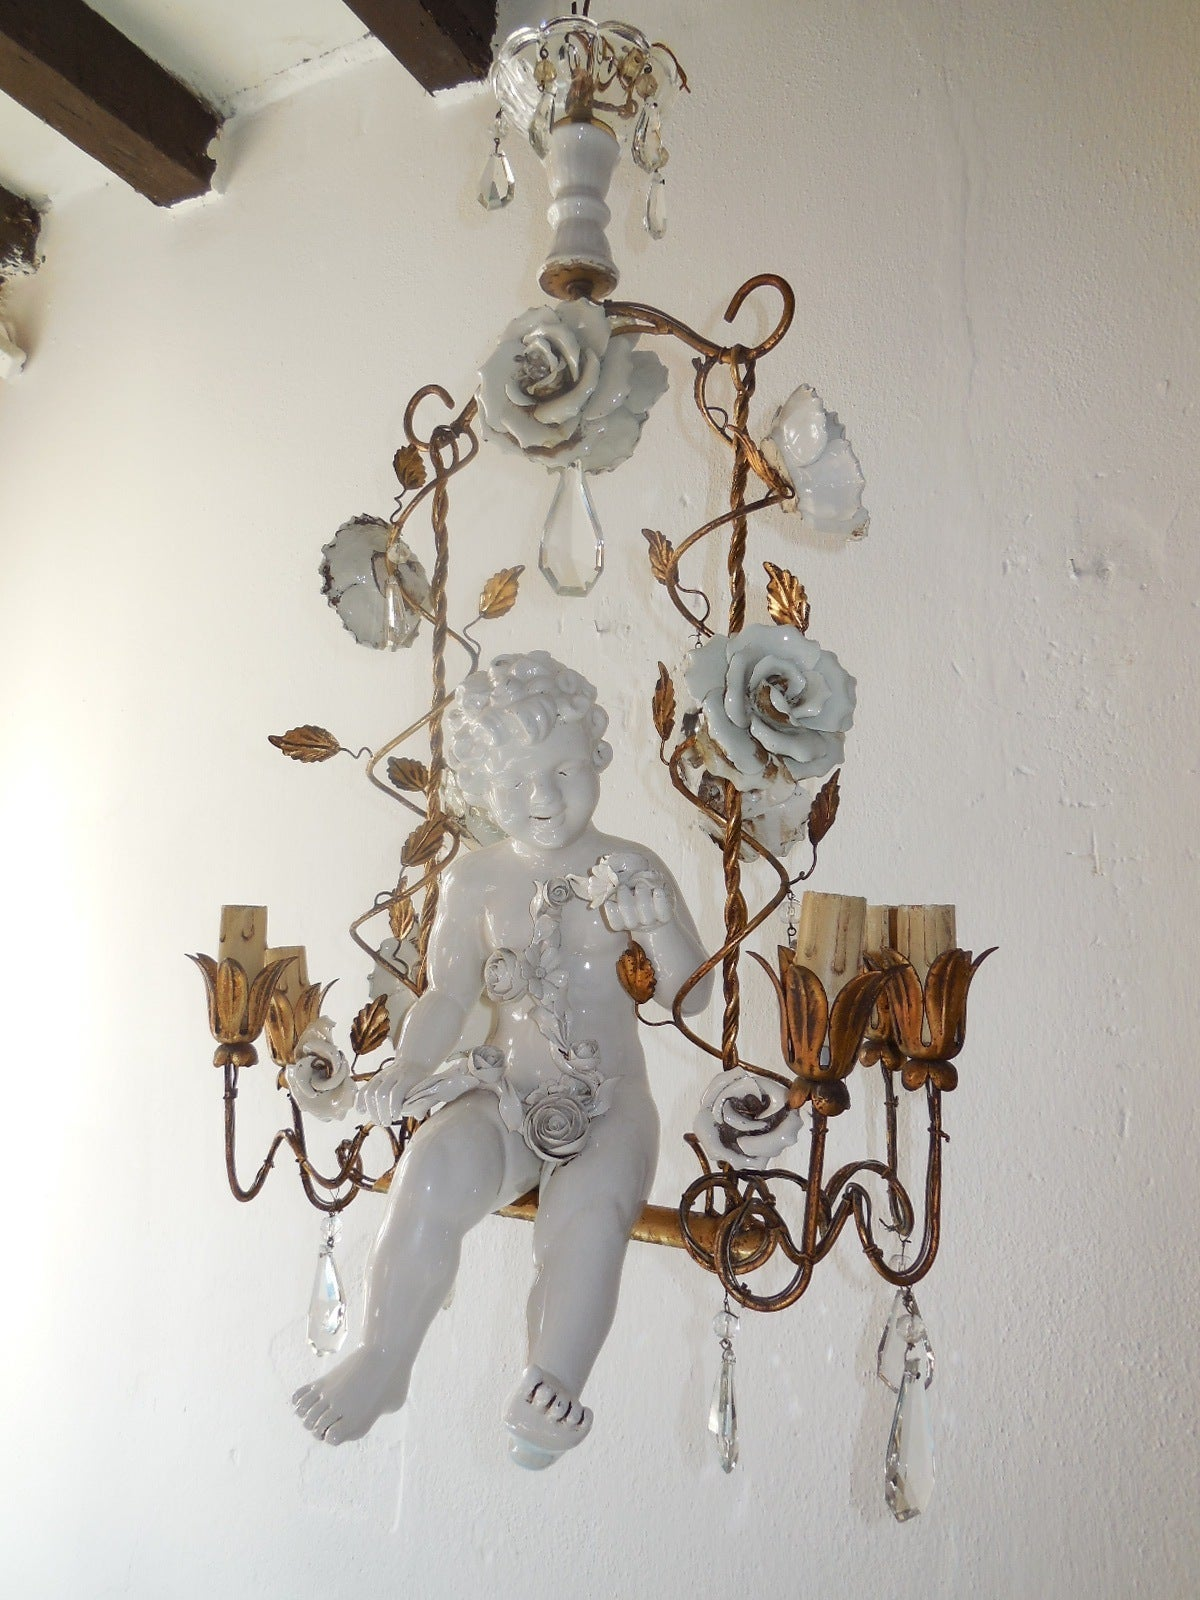 French Porcelain Roses and Tole with Huge Cherub Swinging – Cherub Chandelier